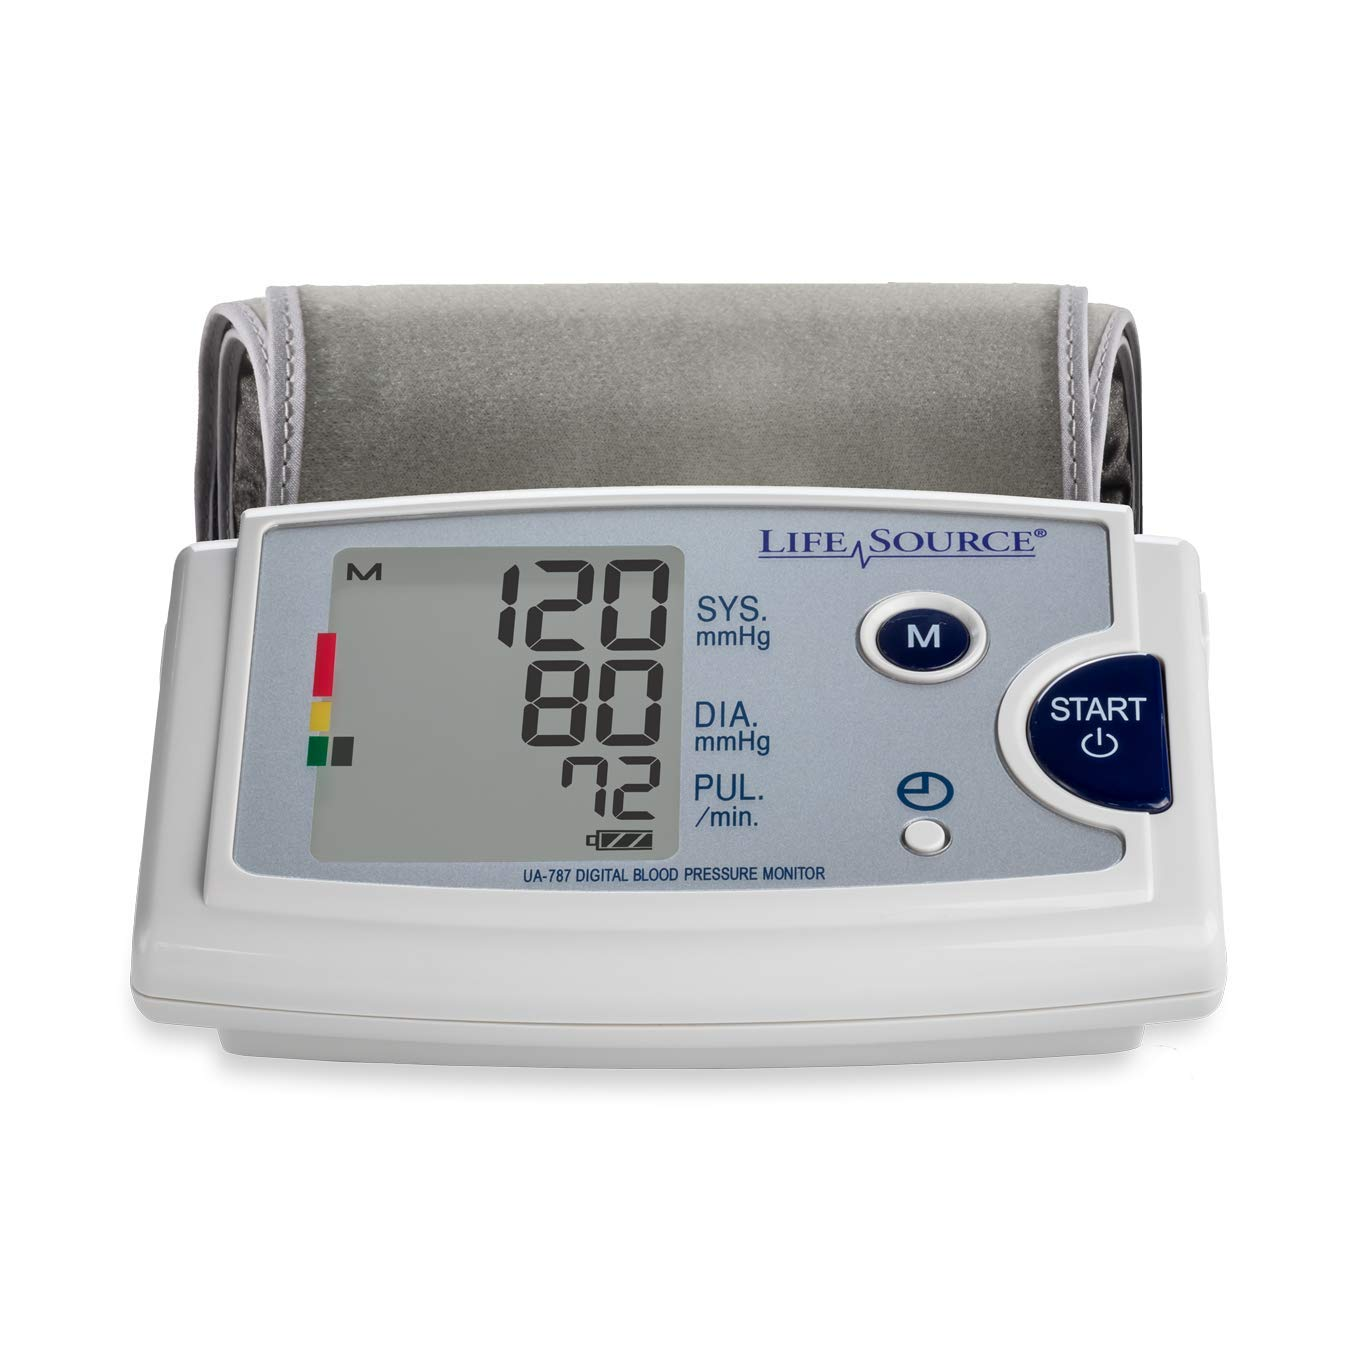 LifeSource Blood Pressure Monitor with Pre-Formed Upper Arm Cuff (UA-787EJ)